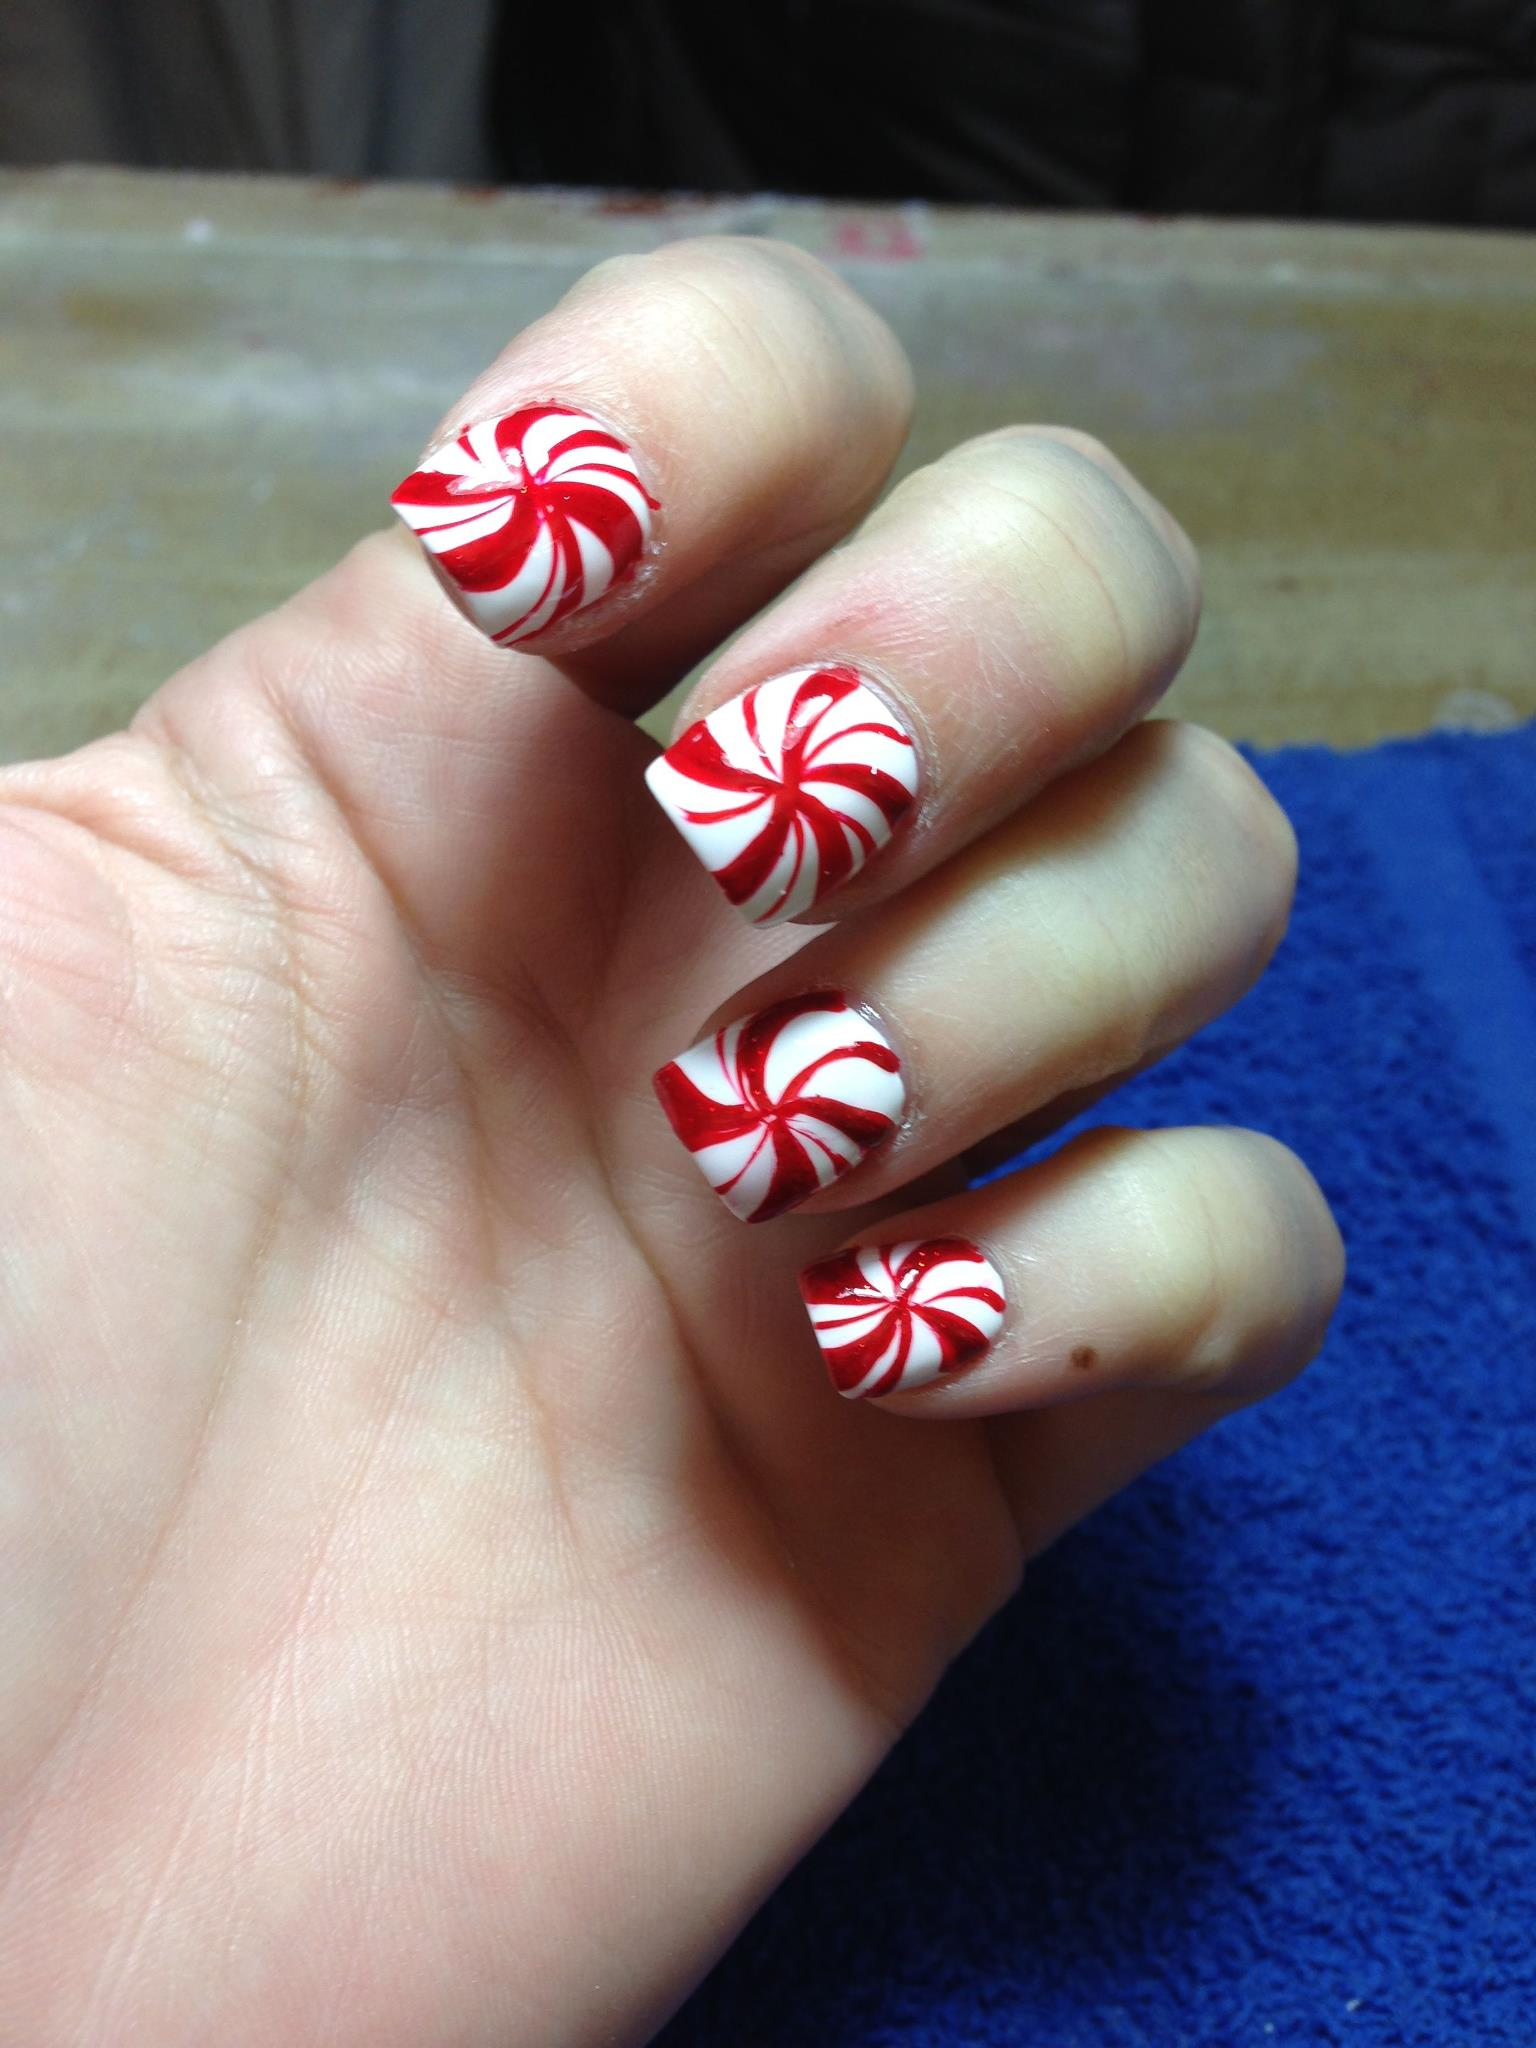 Weekend Ready Chicago Nail Art: Fantasy Nails in Wicker Park ...